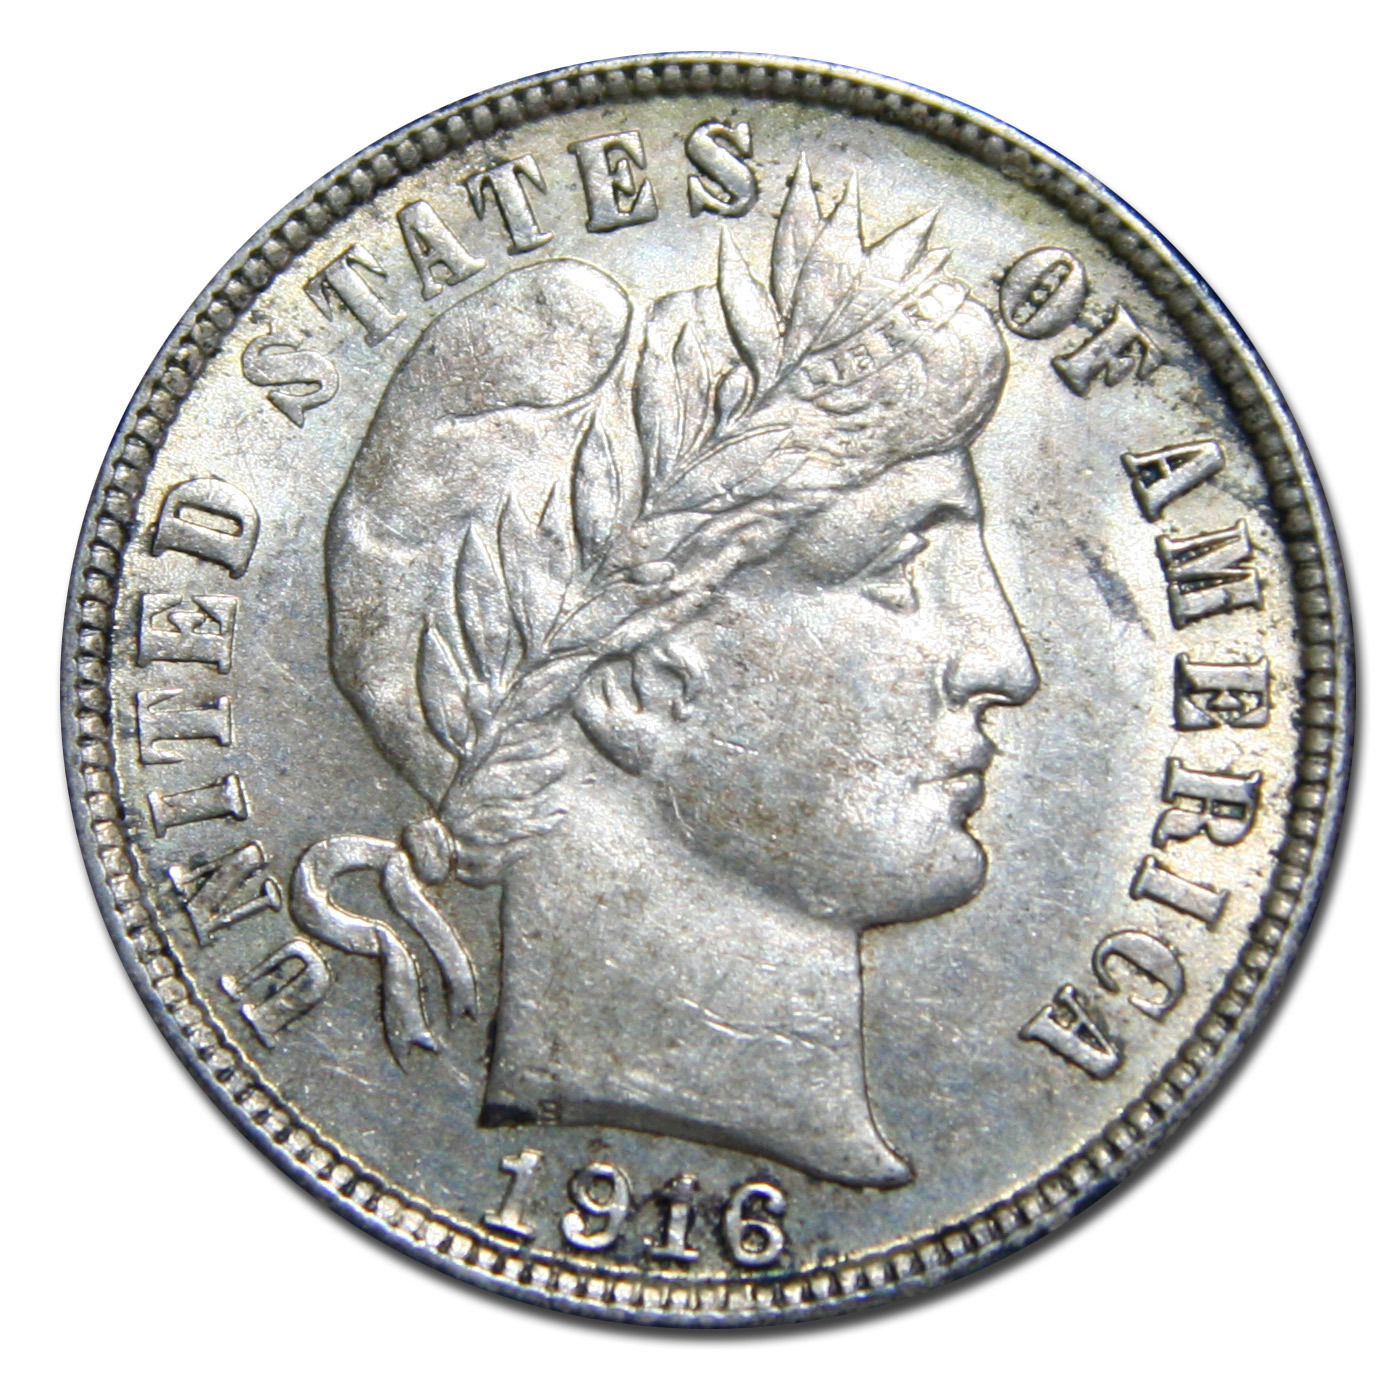 1916S Liberty Barber Head 10¢ Dime Silver Coin Lot# MZ 3002